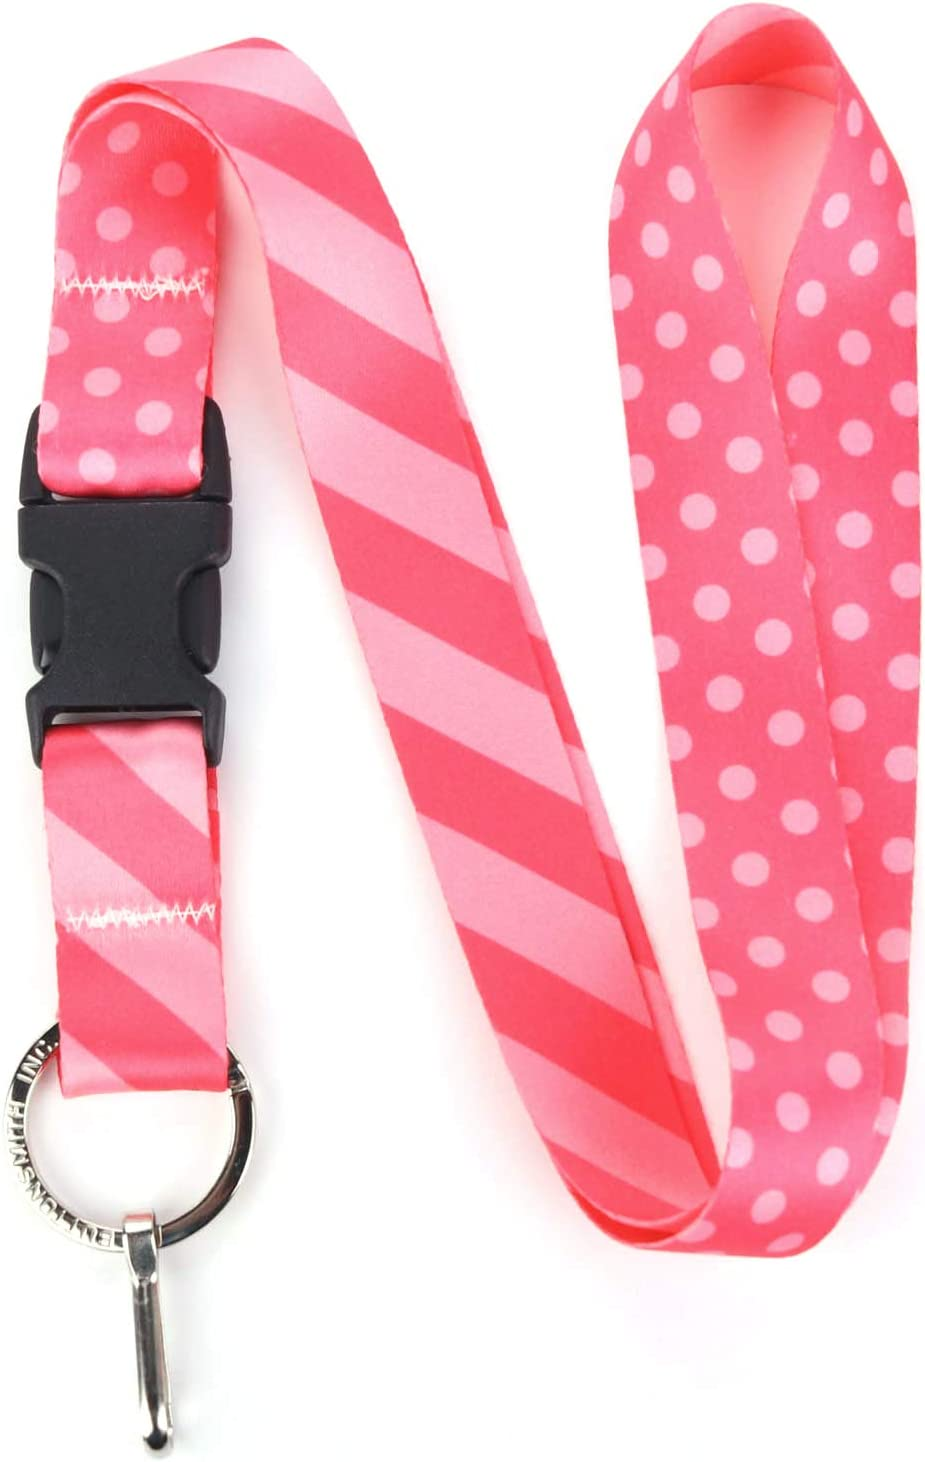 Buttonsmith Pink Dots Premium Lanyard - with Buckle and Flat Ring - Made in The USA